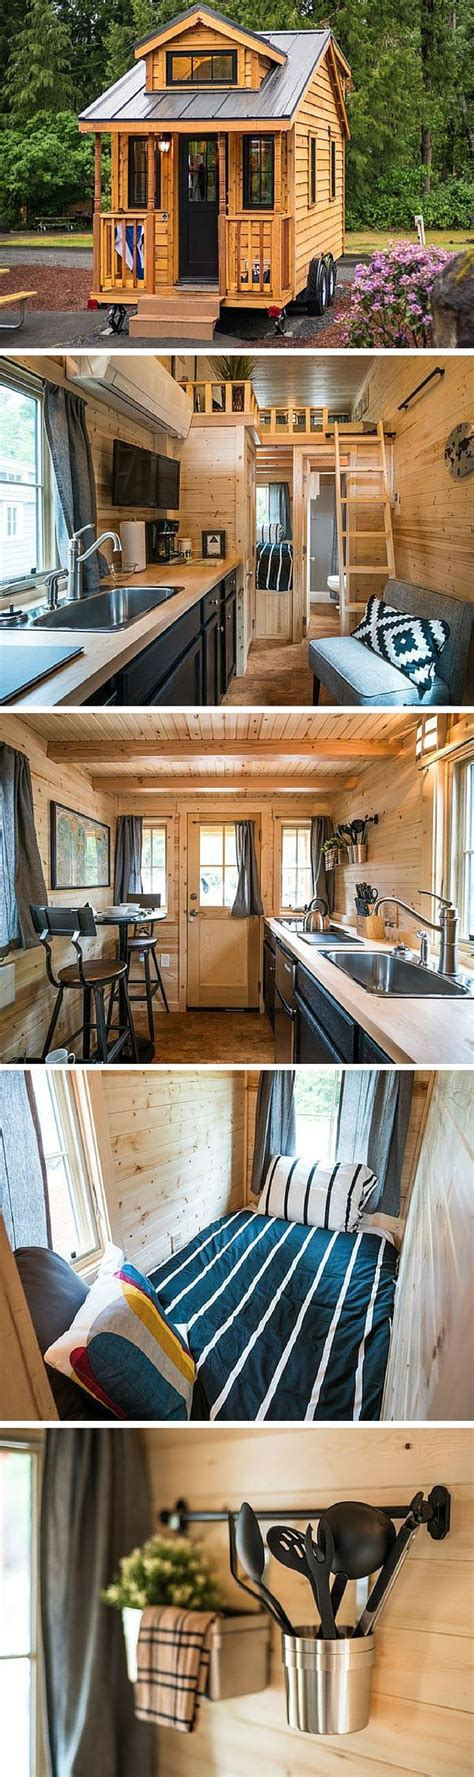 tiny house on wheels companies 25 best ideas about tiny houses on pinterest tiny homes